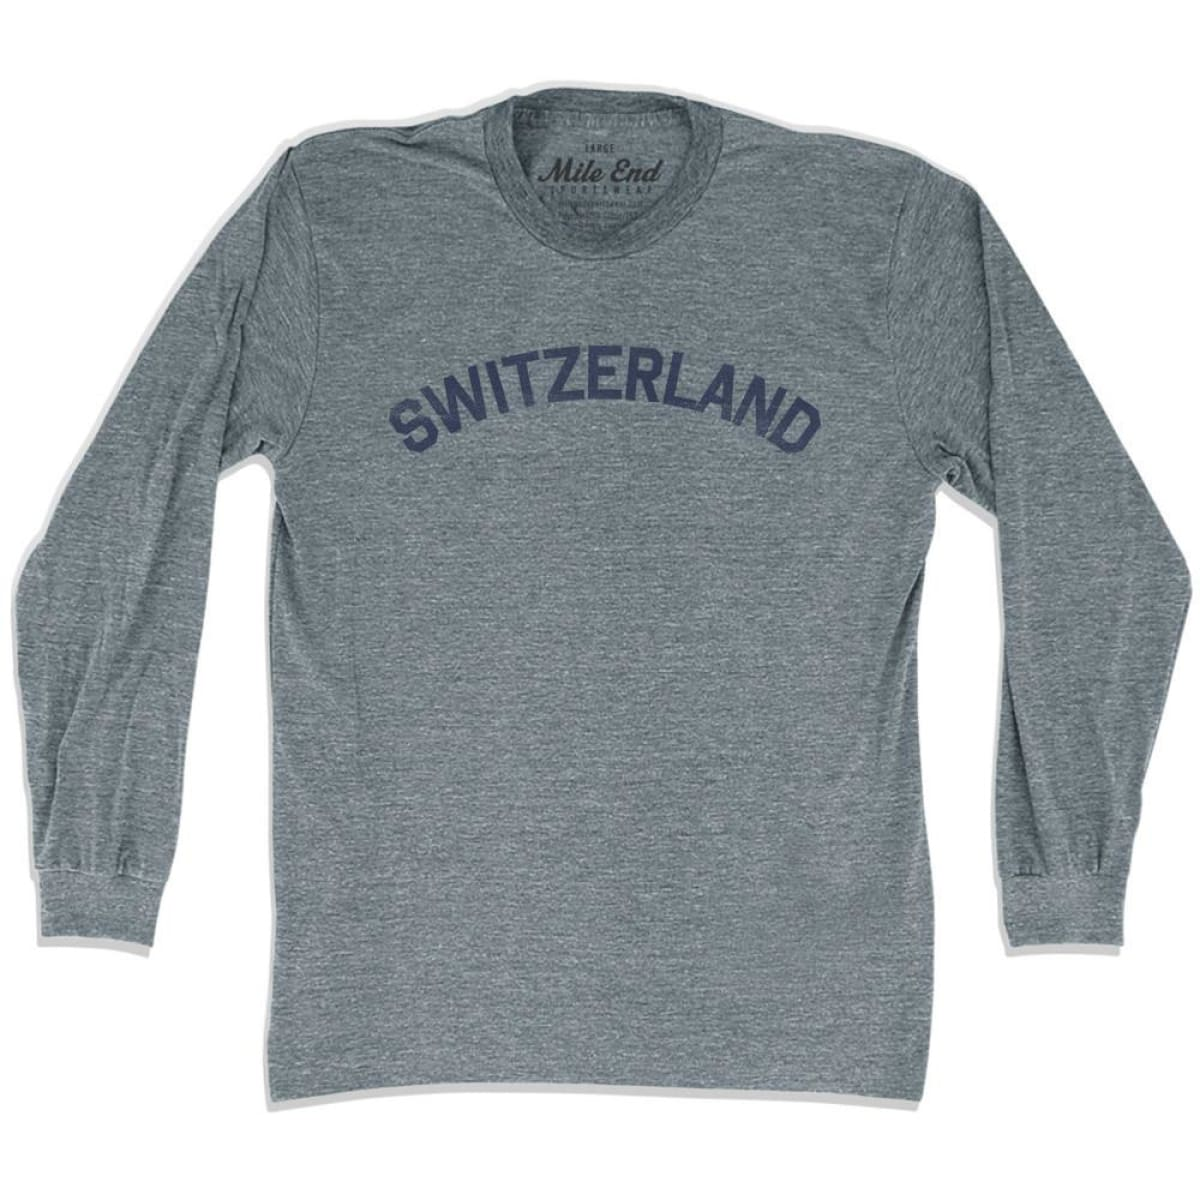 Switzerland City Vintage Long Sleeve T-shirt - Athletic Grey / Adult X-Small - Mile End City